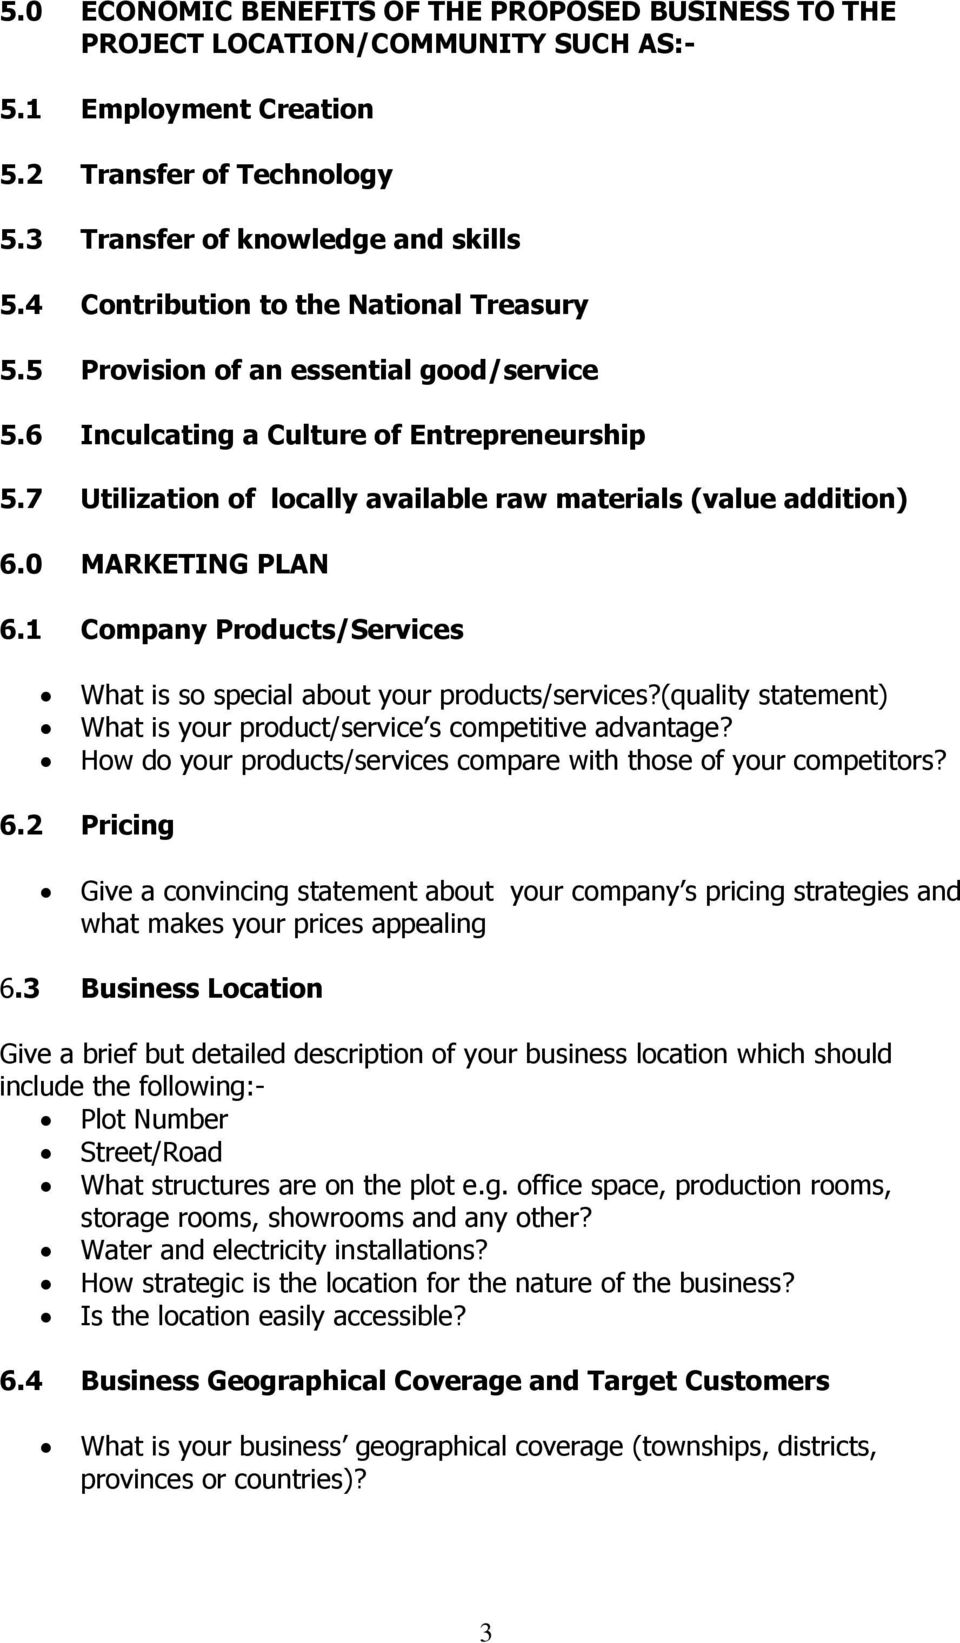 0 MARKETING PLAN 6.1 Company Products/Services What is so special about your products/services?(quality statement) What is your product/service s competitive advantage?